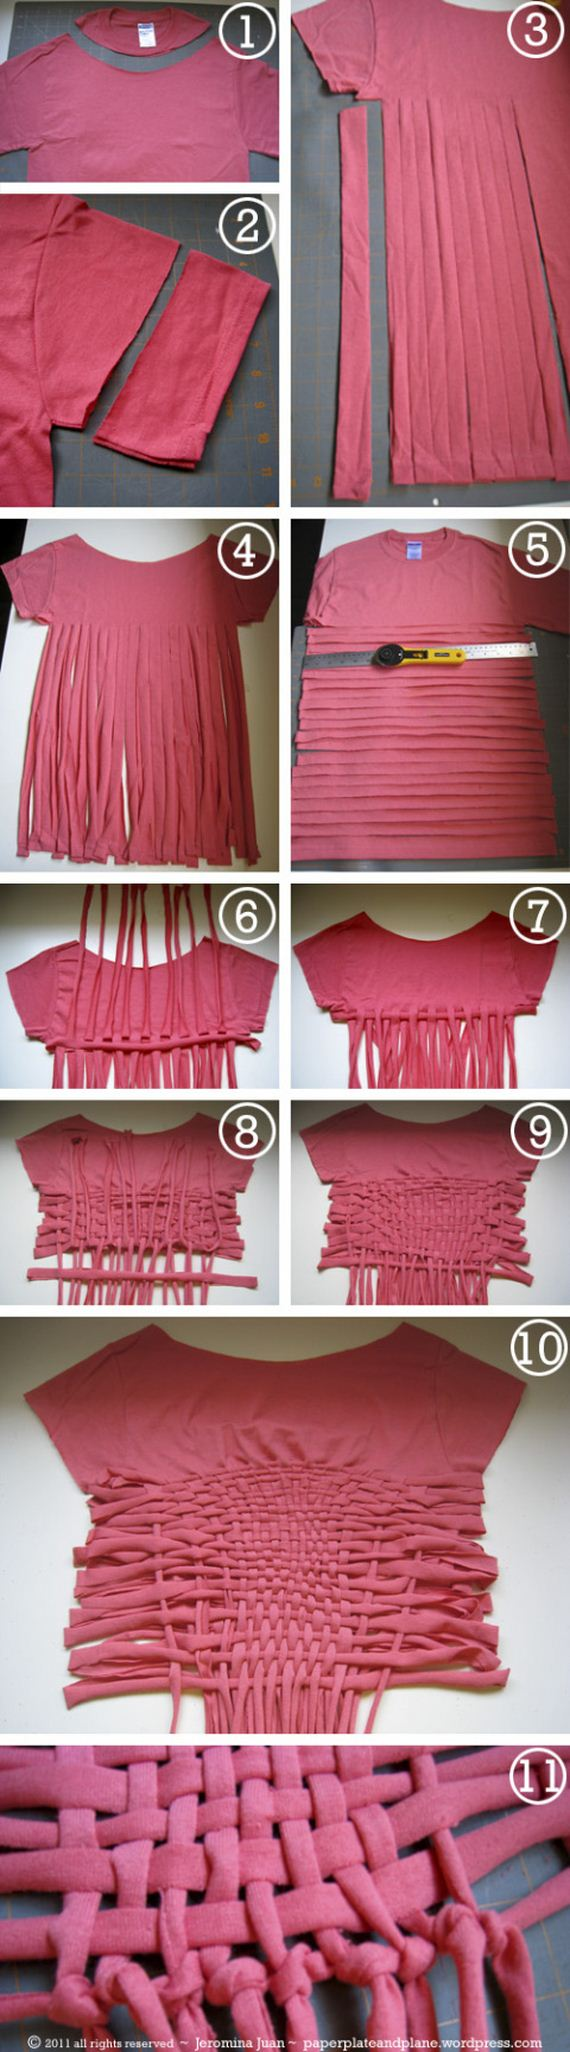 17-DIY-Crop-Tops-for-Summer